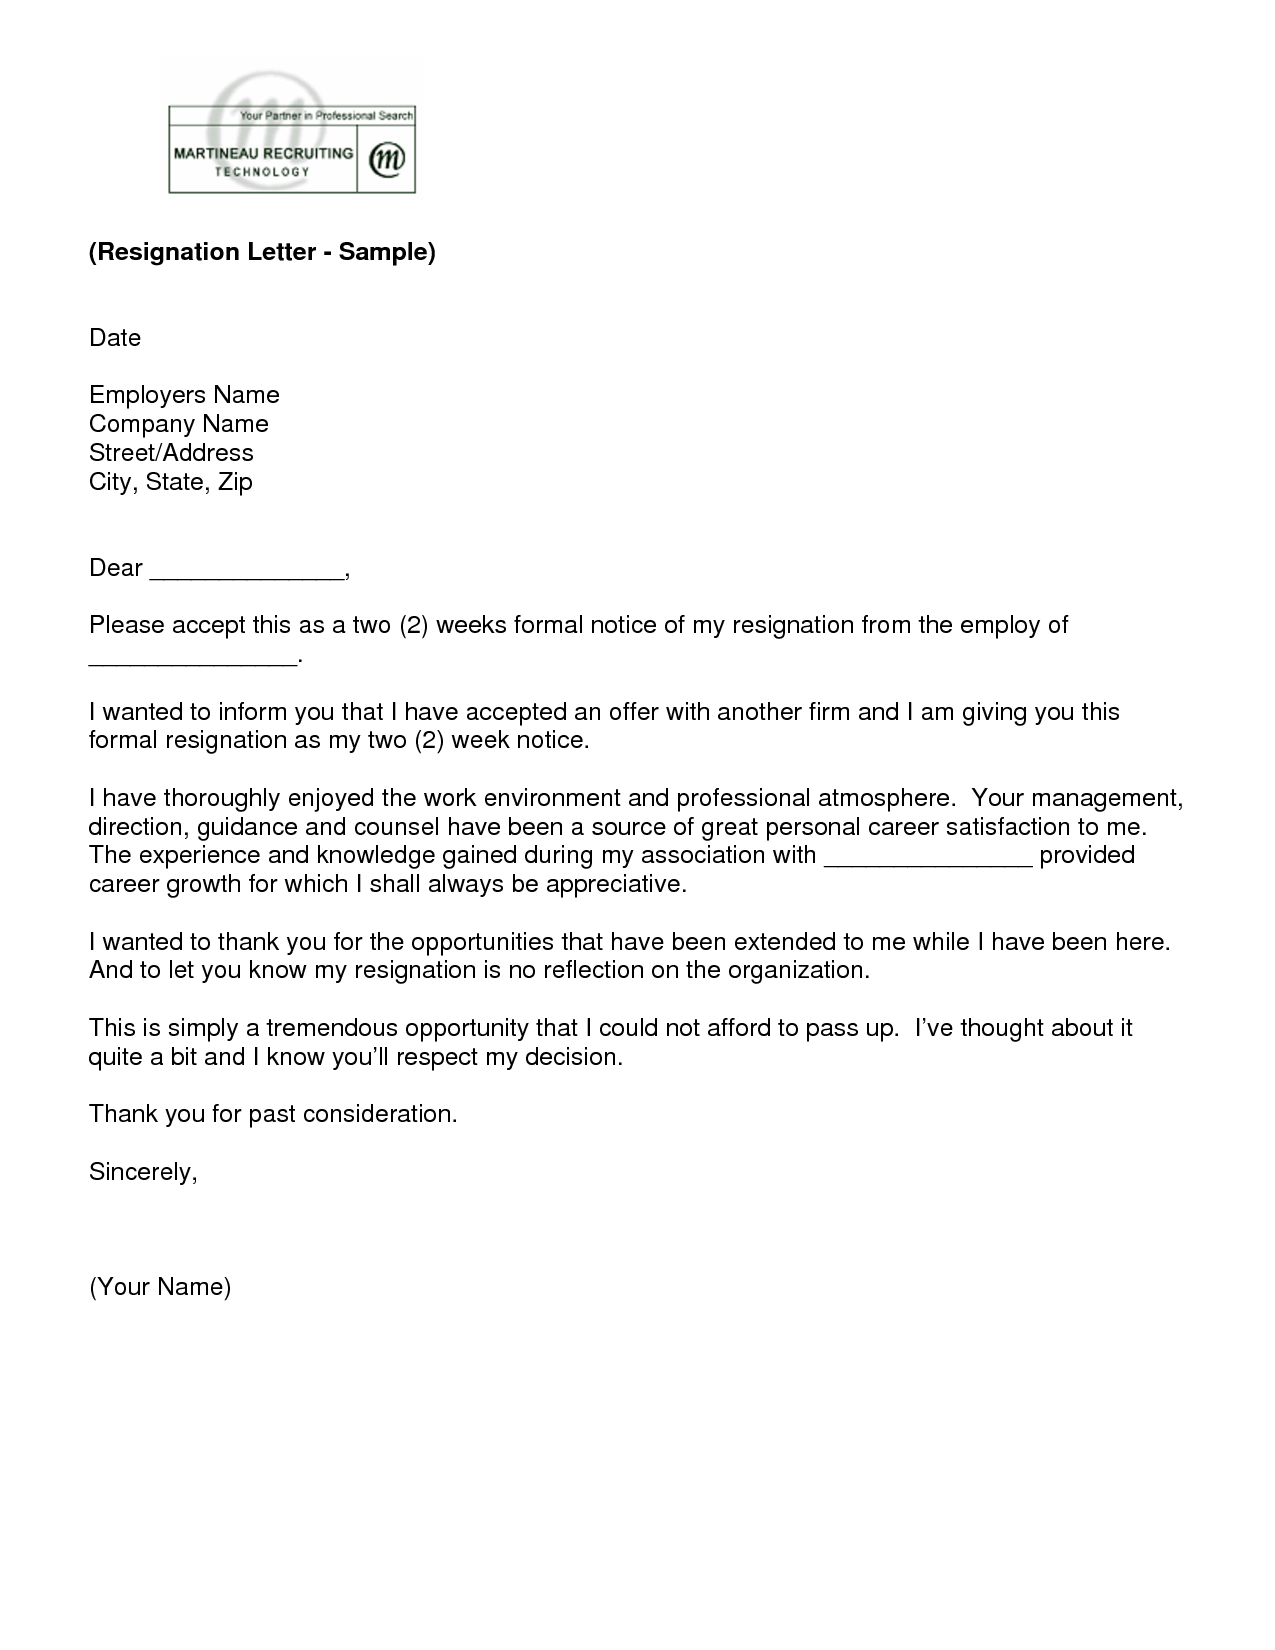 resignation letter sample 2 weeks notice two week notice form letter of resignation 2 weeks notice template